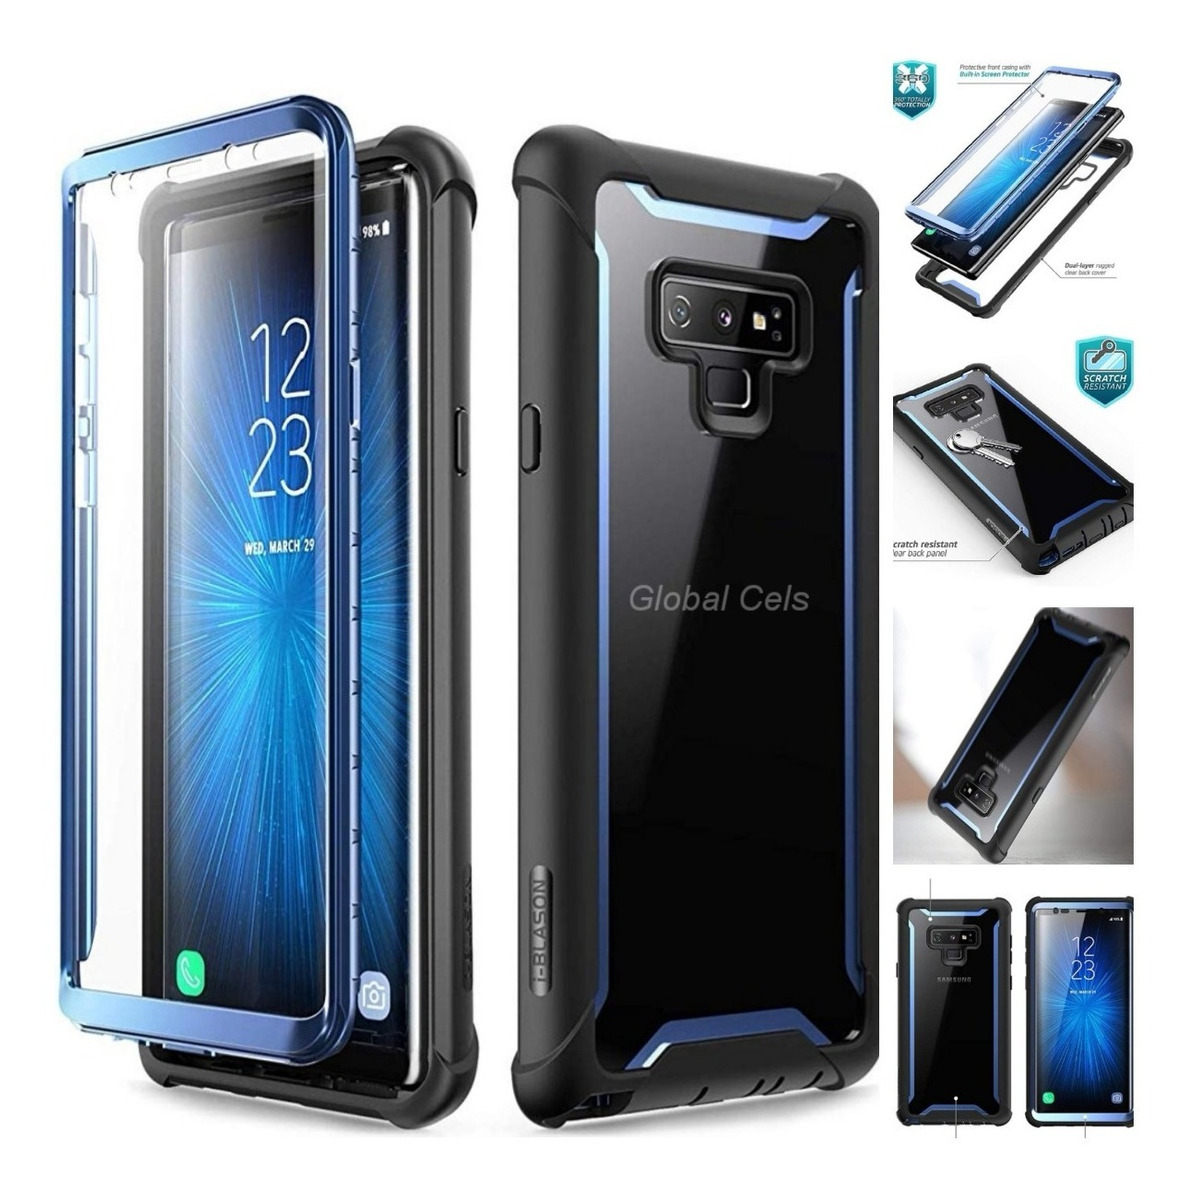 4a4e2bb7b8b Case Galaxy Note 9 8 S9 Plus Galaxy S8 Plus Carcasa 360° Usa - S ...